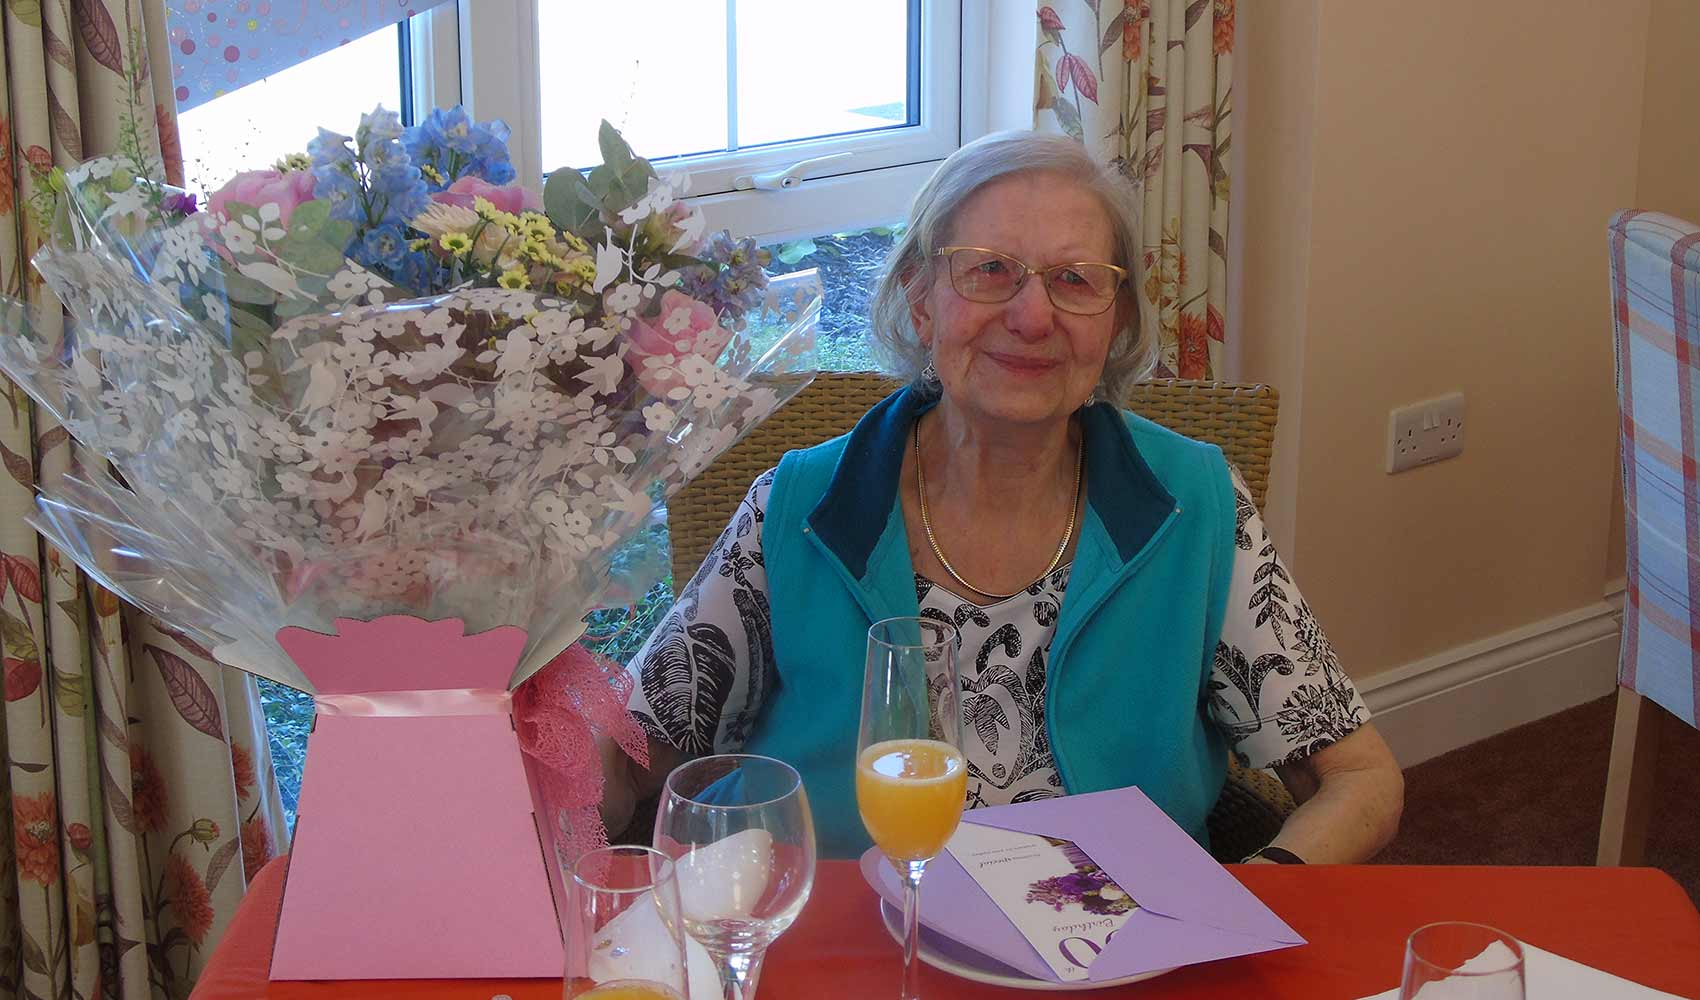 90th birthday celebrations at St Ives House